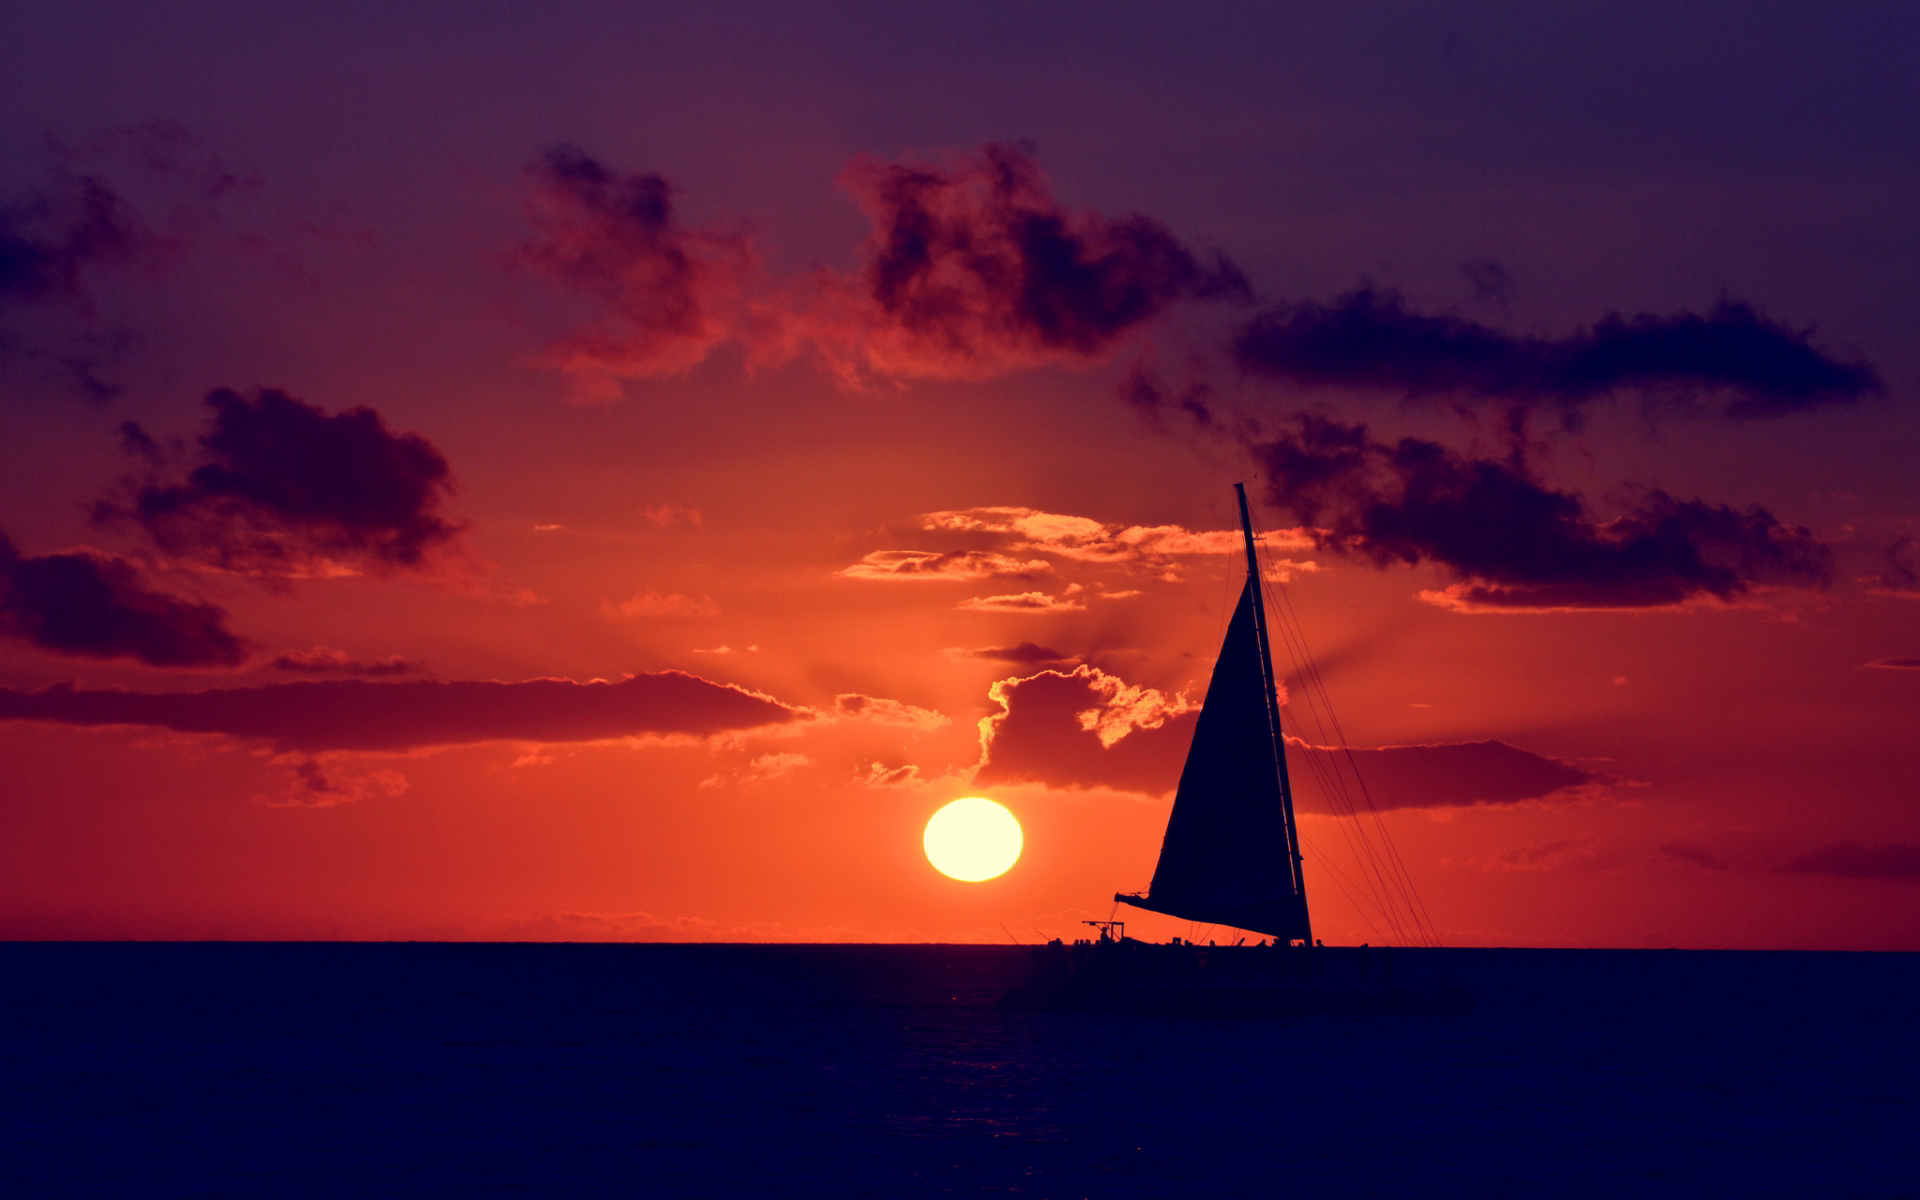 Sailing ocean sunset wallpaper 1920x1200 31712 1920x1200